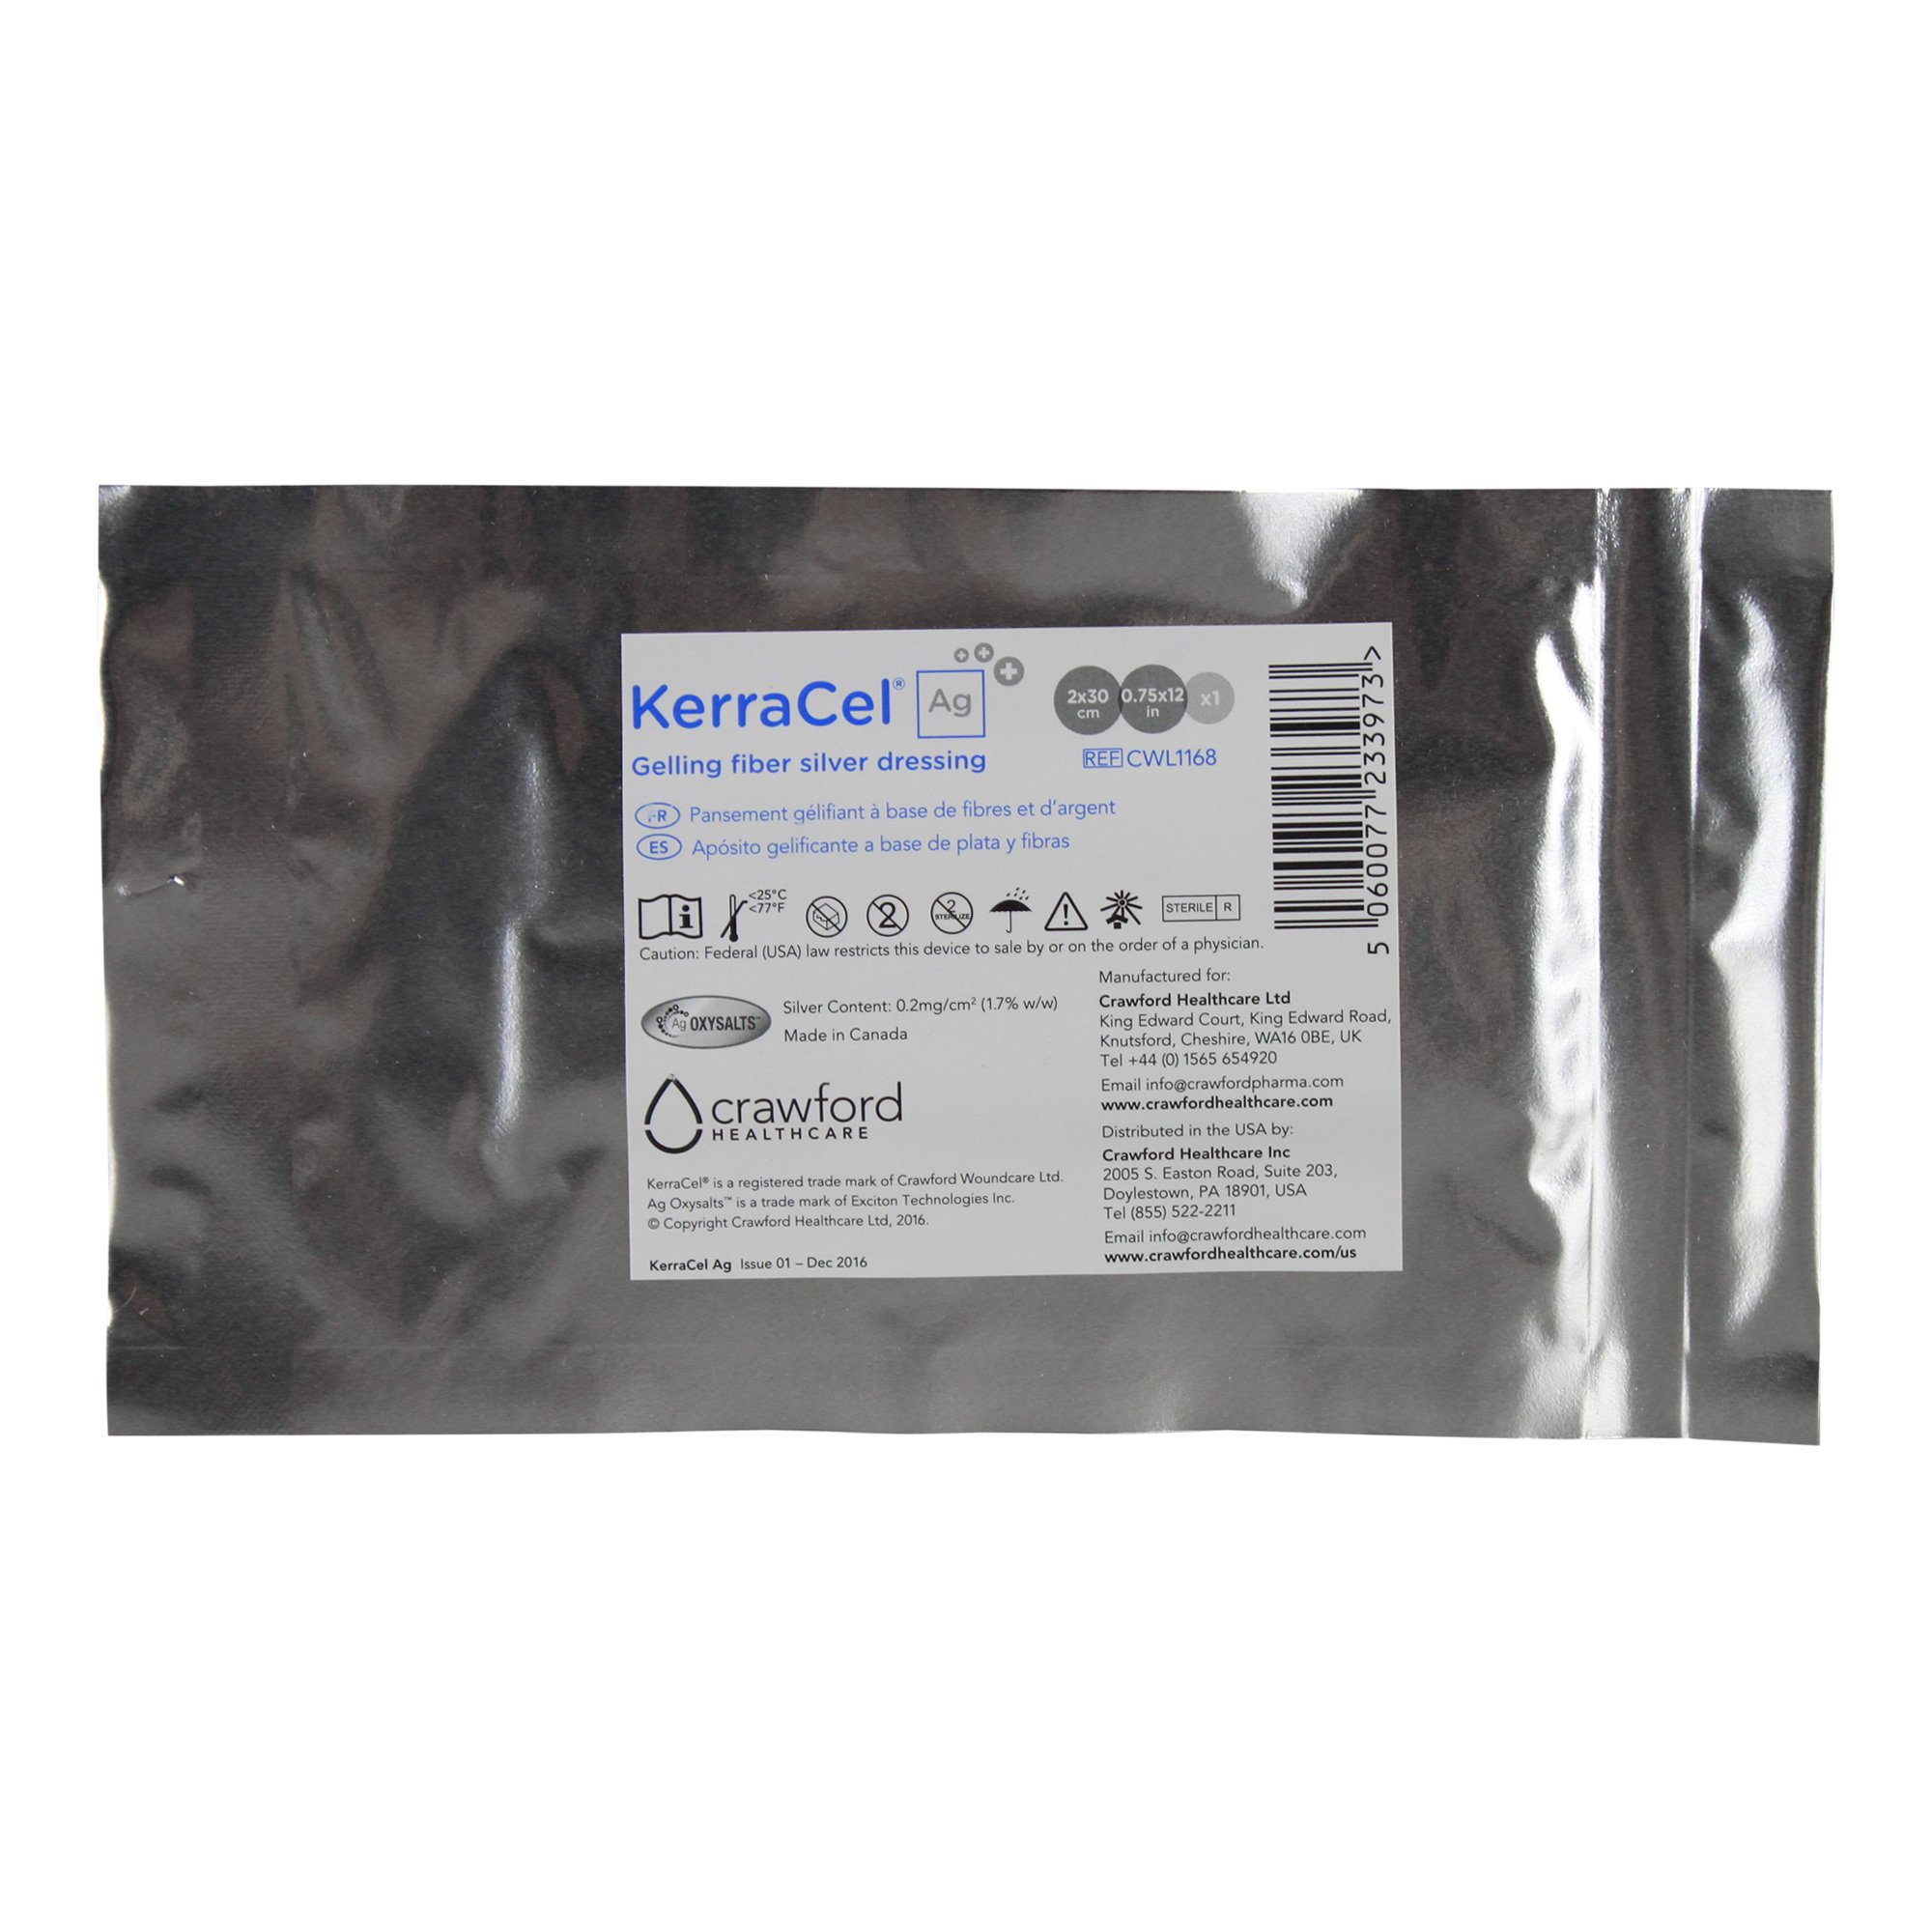 KerraCel Ag .75'' x 12'' Gelling Fiber Silver Would Dressing (CWL1168) - Absorbs and Isolates Wound Drainage and Kills Bacteria, Micro-Contours to Wound Bed, Maintains Healthy Moisture Levels (1 Each)